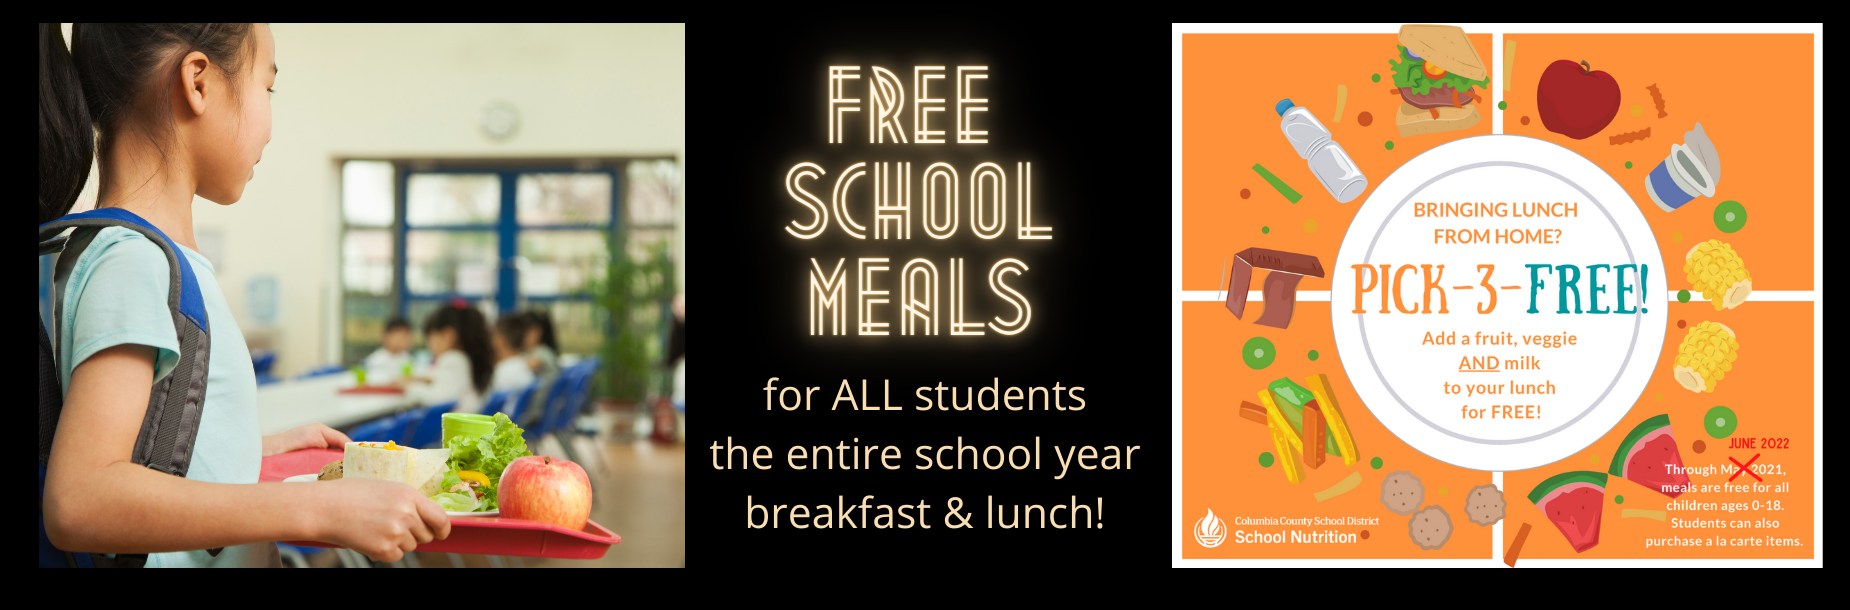 free meals 2021-22